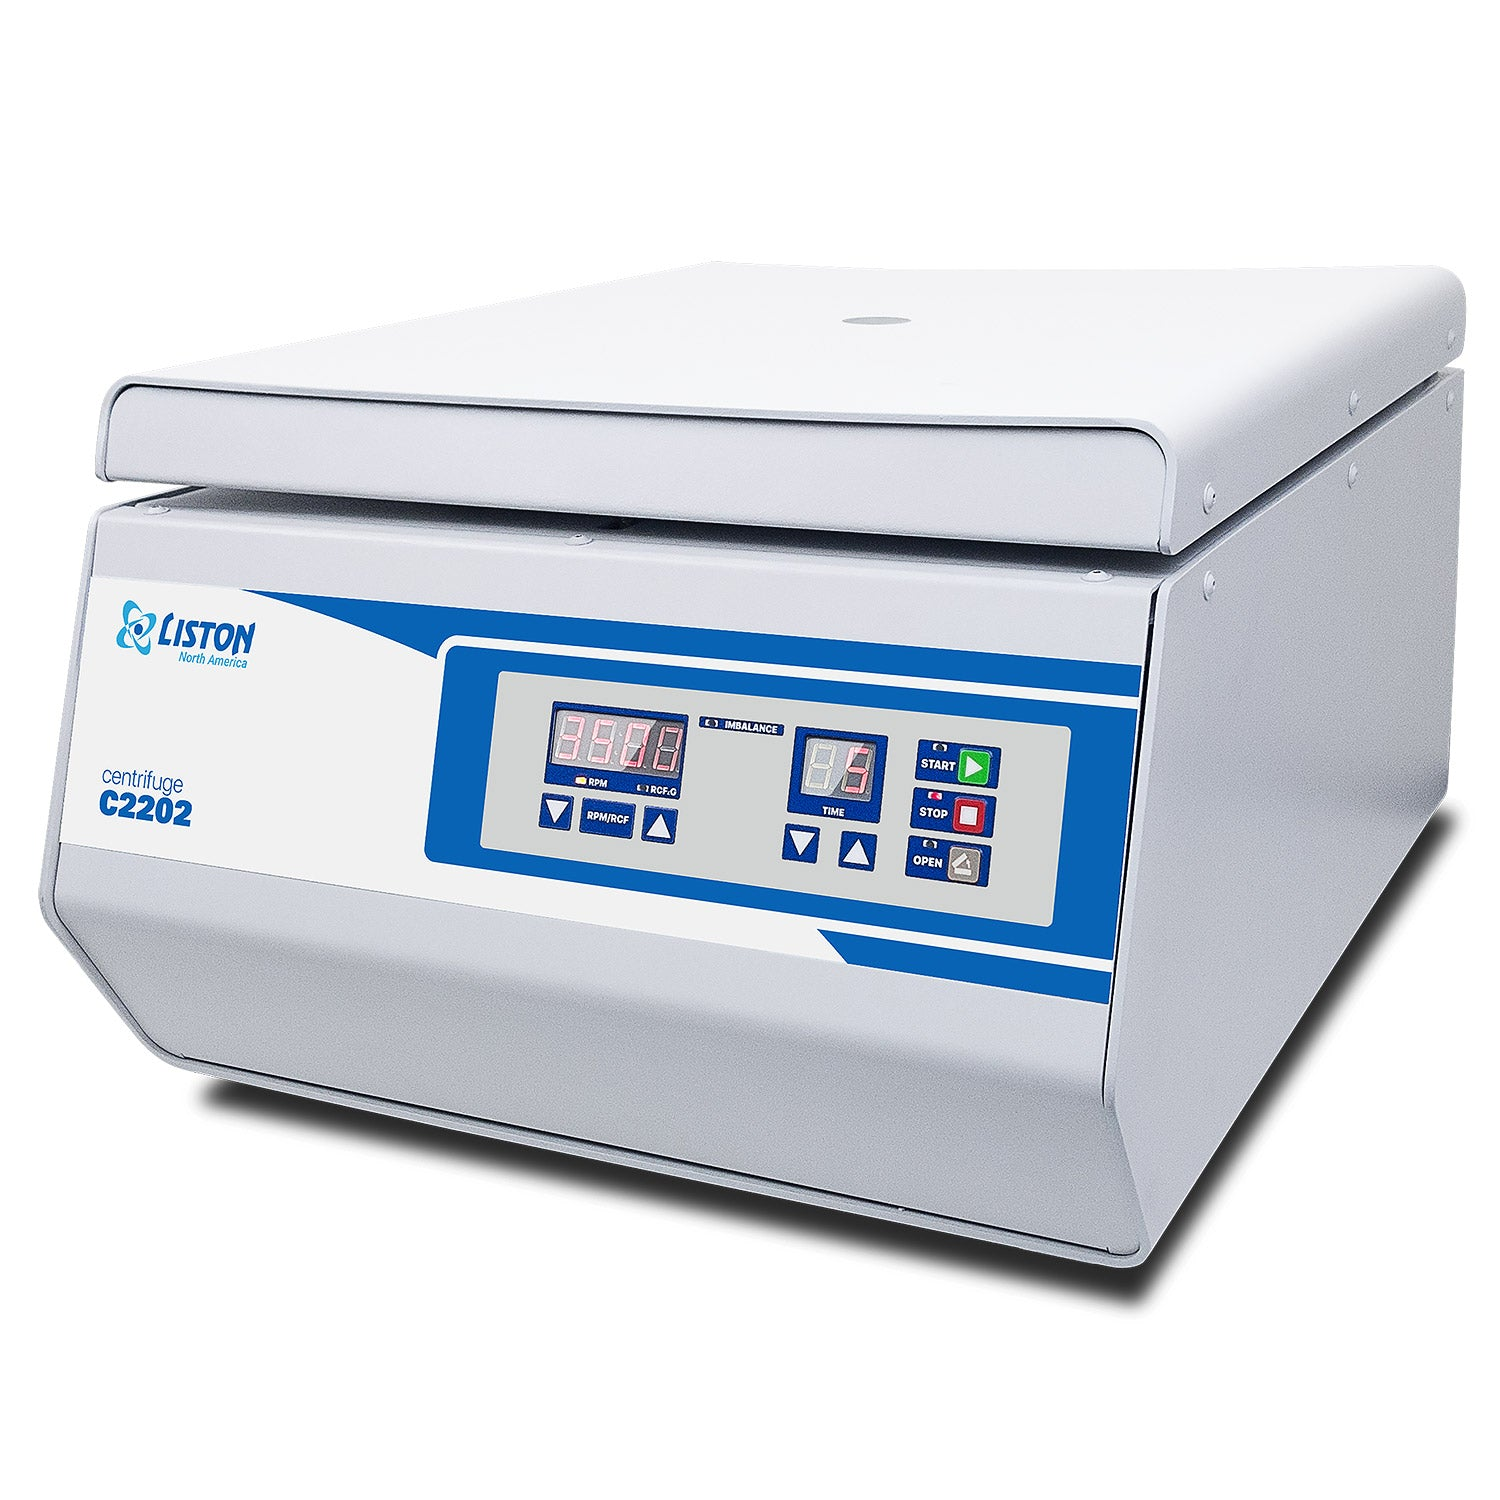 LISTON C2202 Swing-Out Benchtop Centrifuge with Rotor Included for Clinical and Research Use